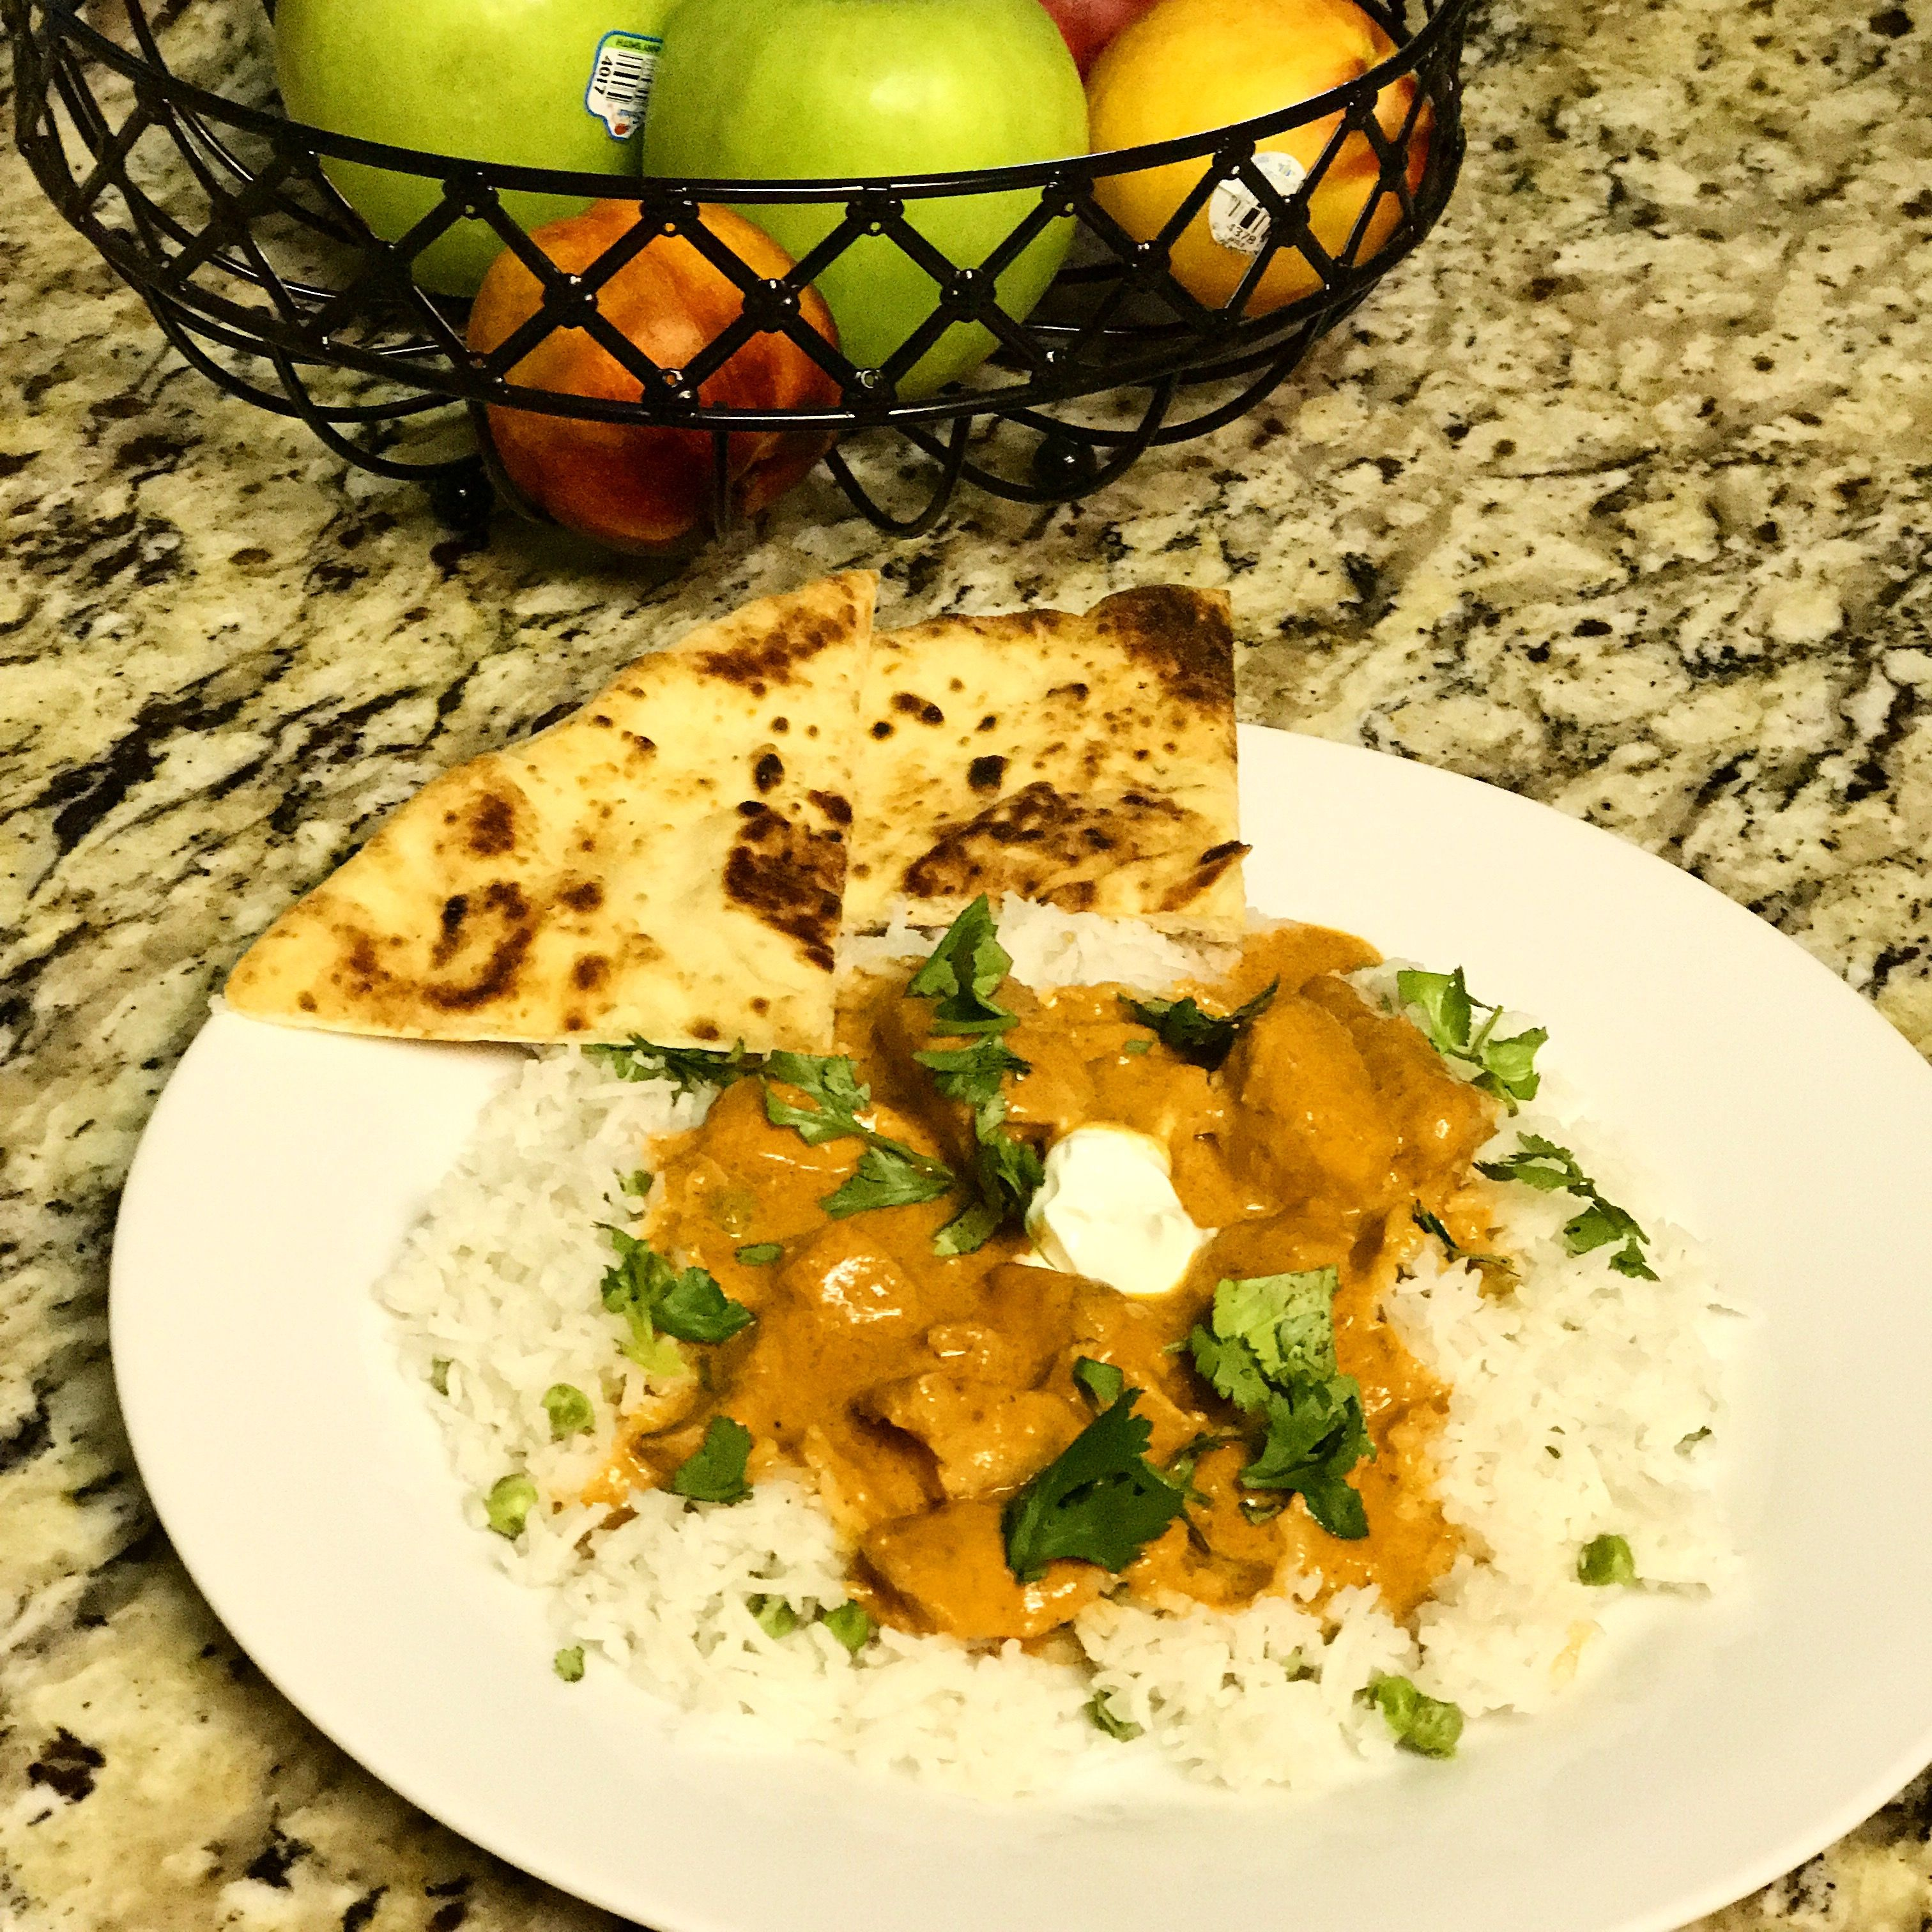 Butter chicken with cilantro basmati, and garlic naan, from scratch! Delilah!